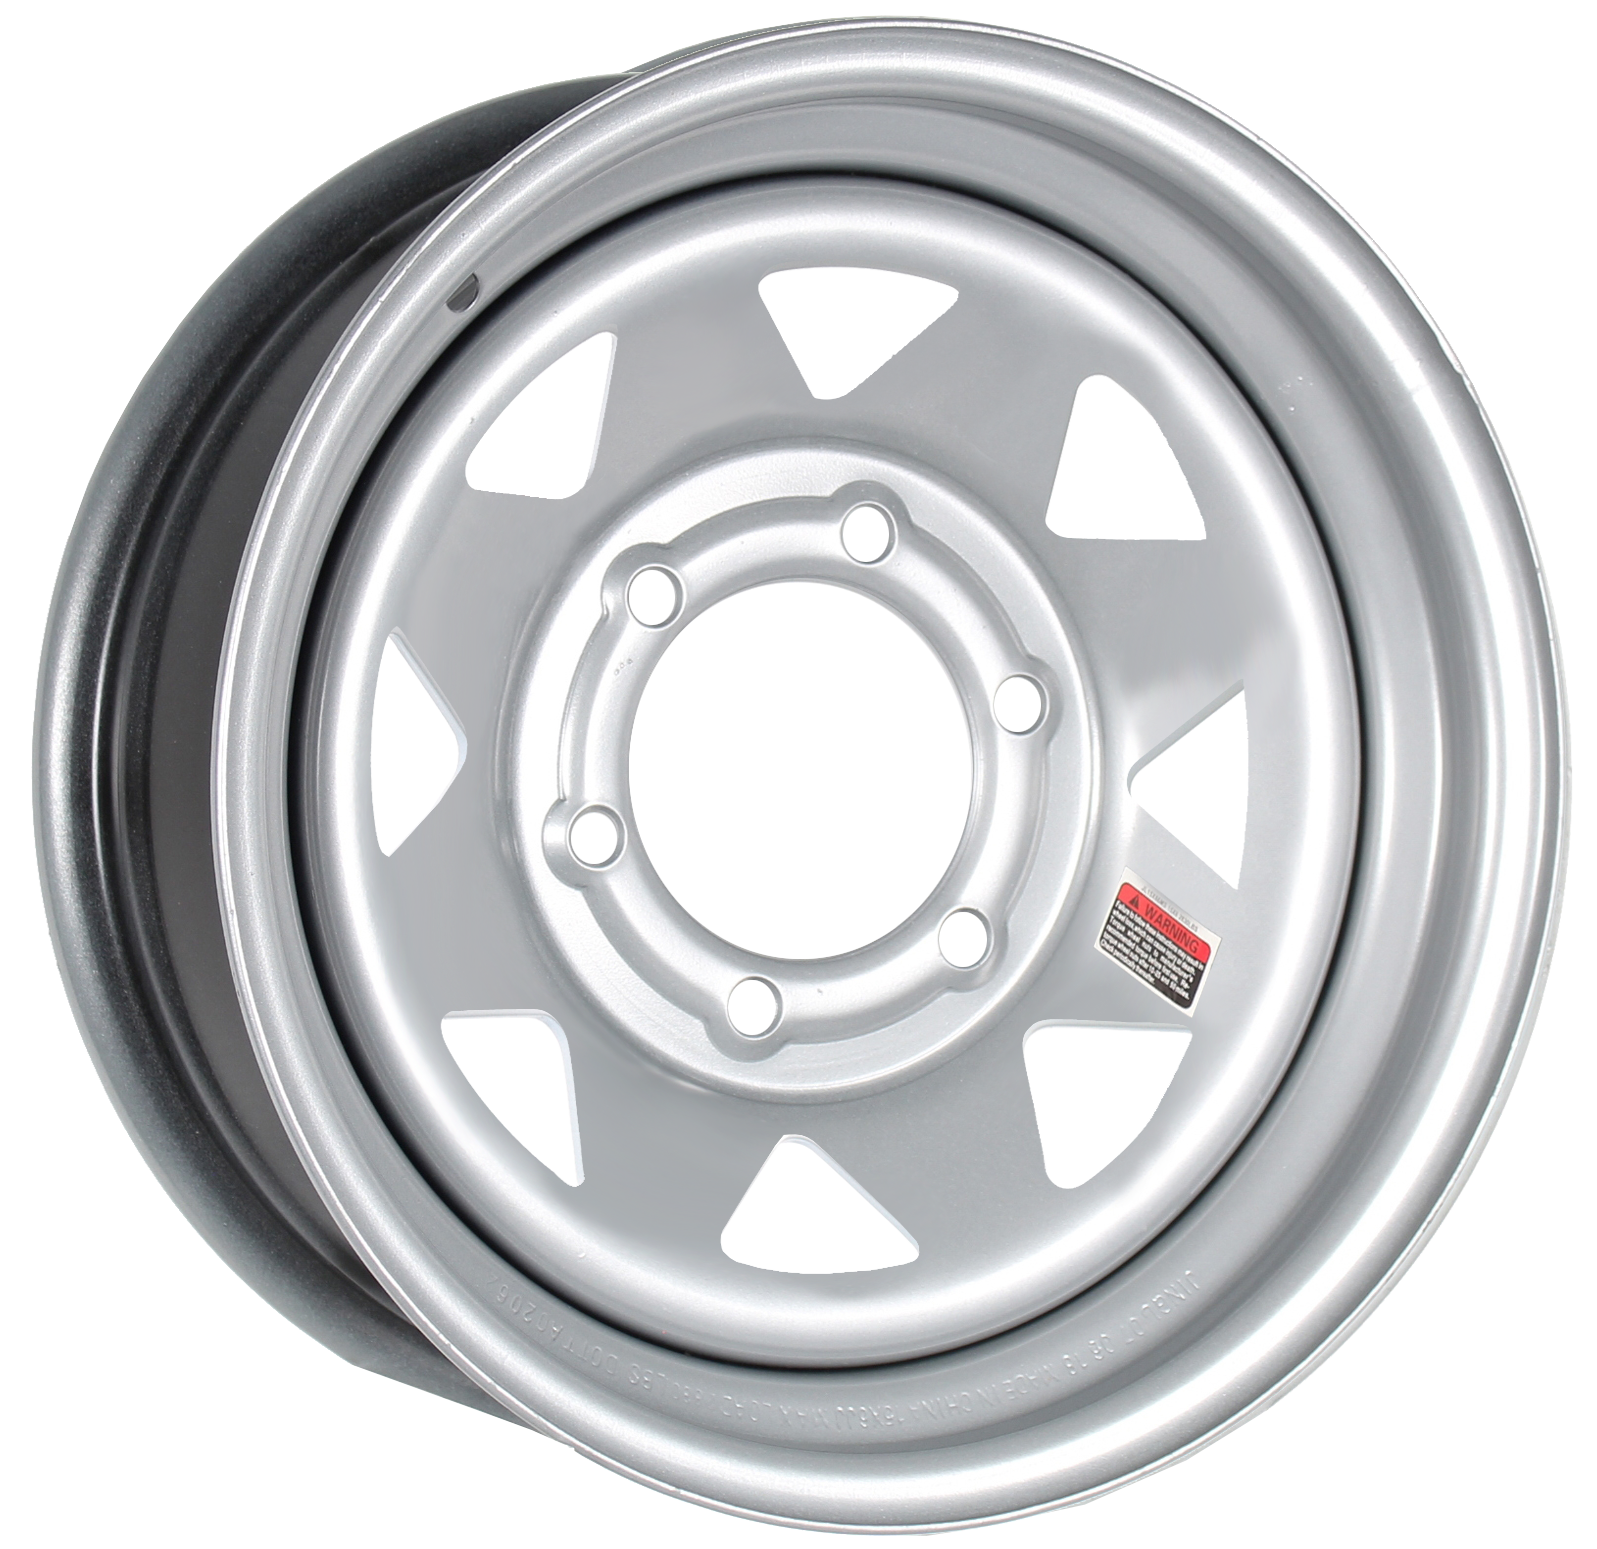 15x6 6-5.5 Silver Spoke Steel Trailer Wheel Image